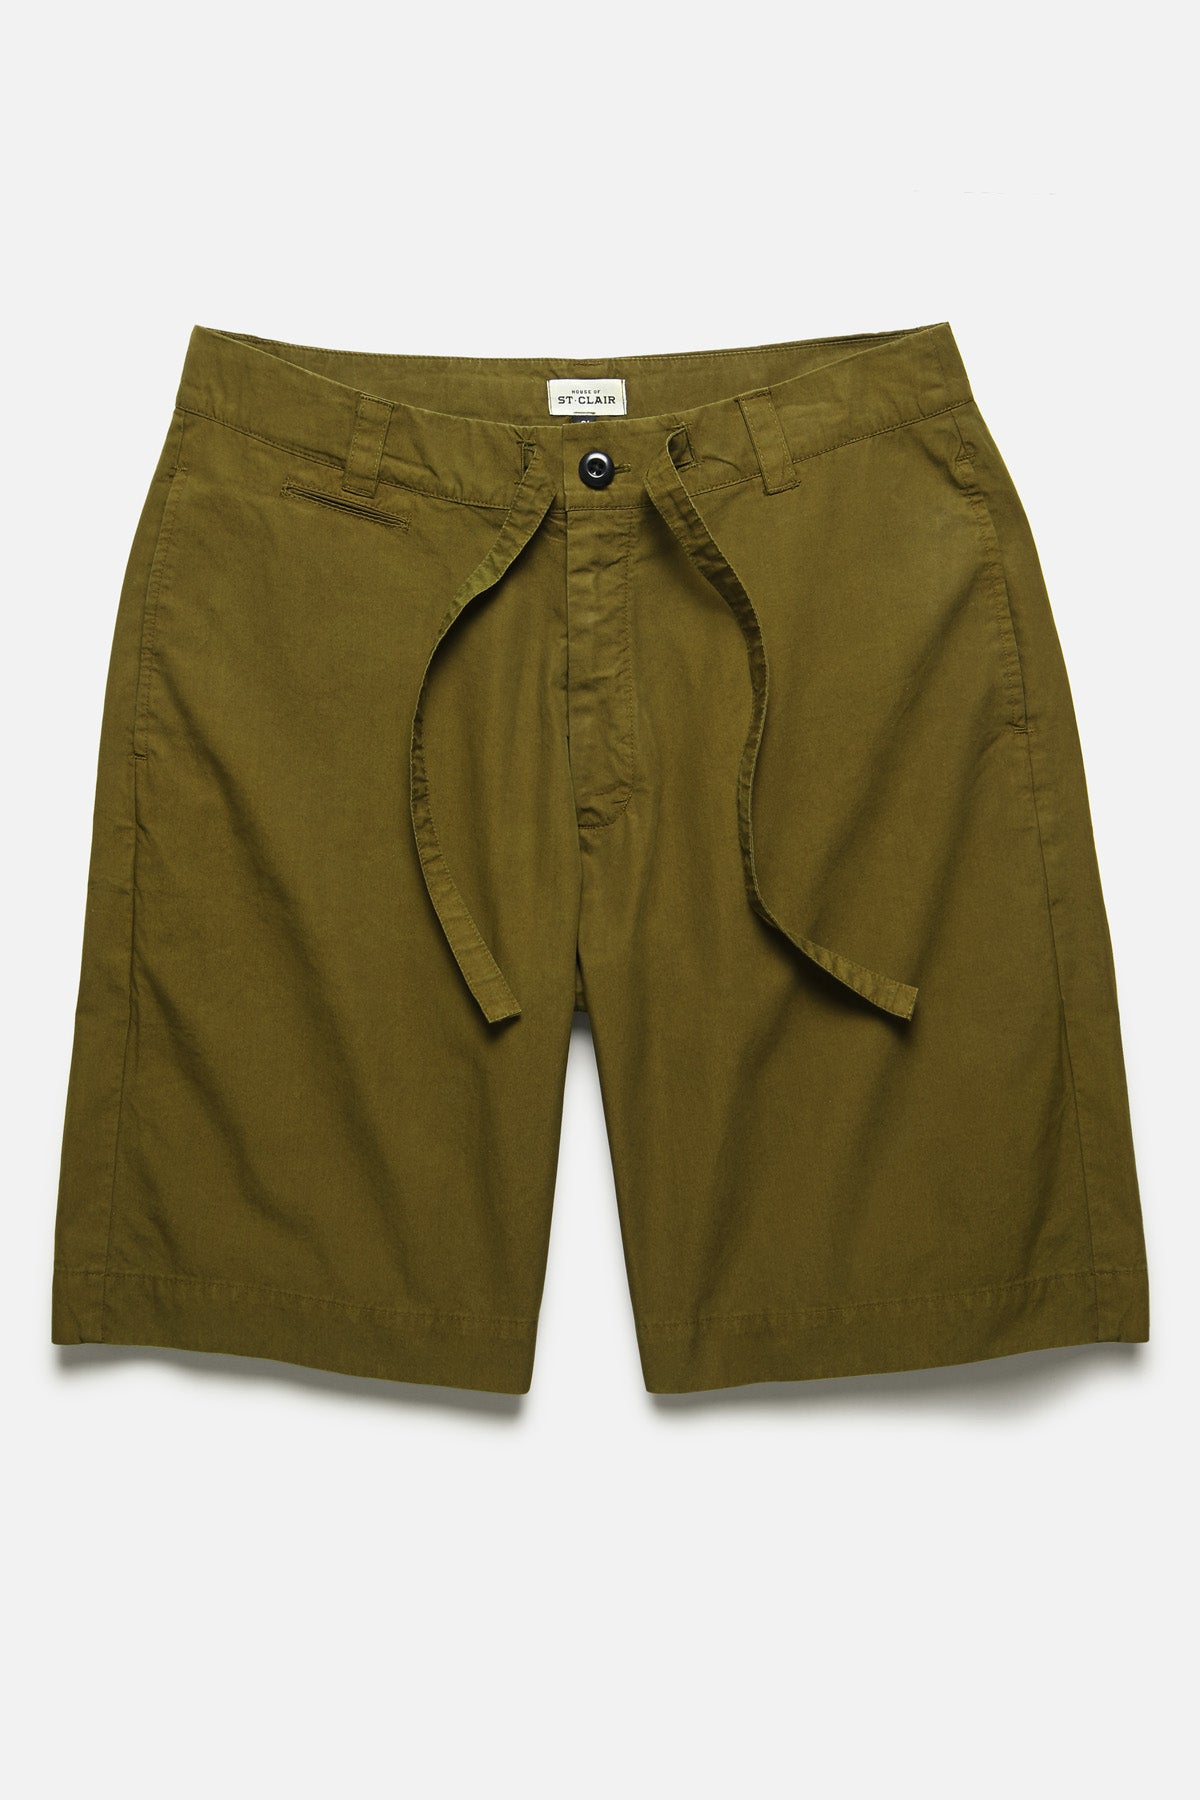 DRAWSTRING SHORT IN OLIVE TYPEWRITER - Fortune Goods